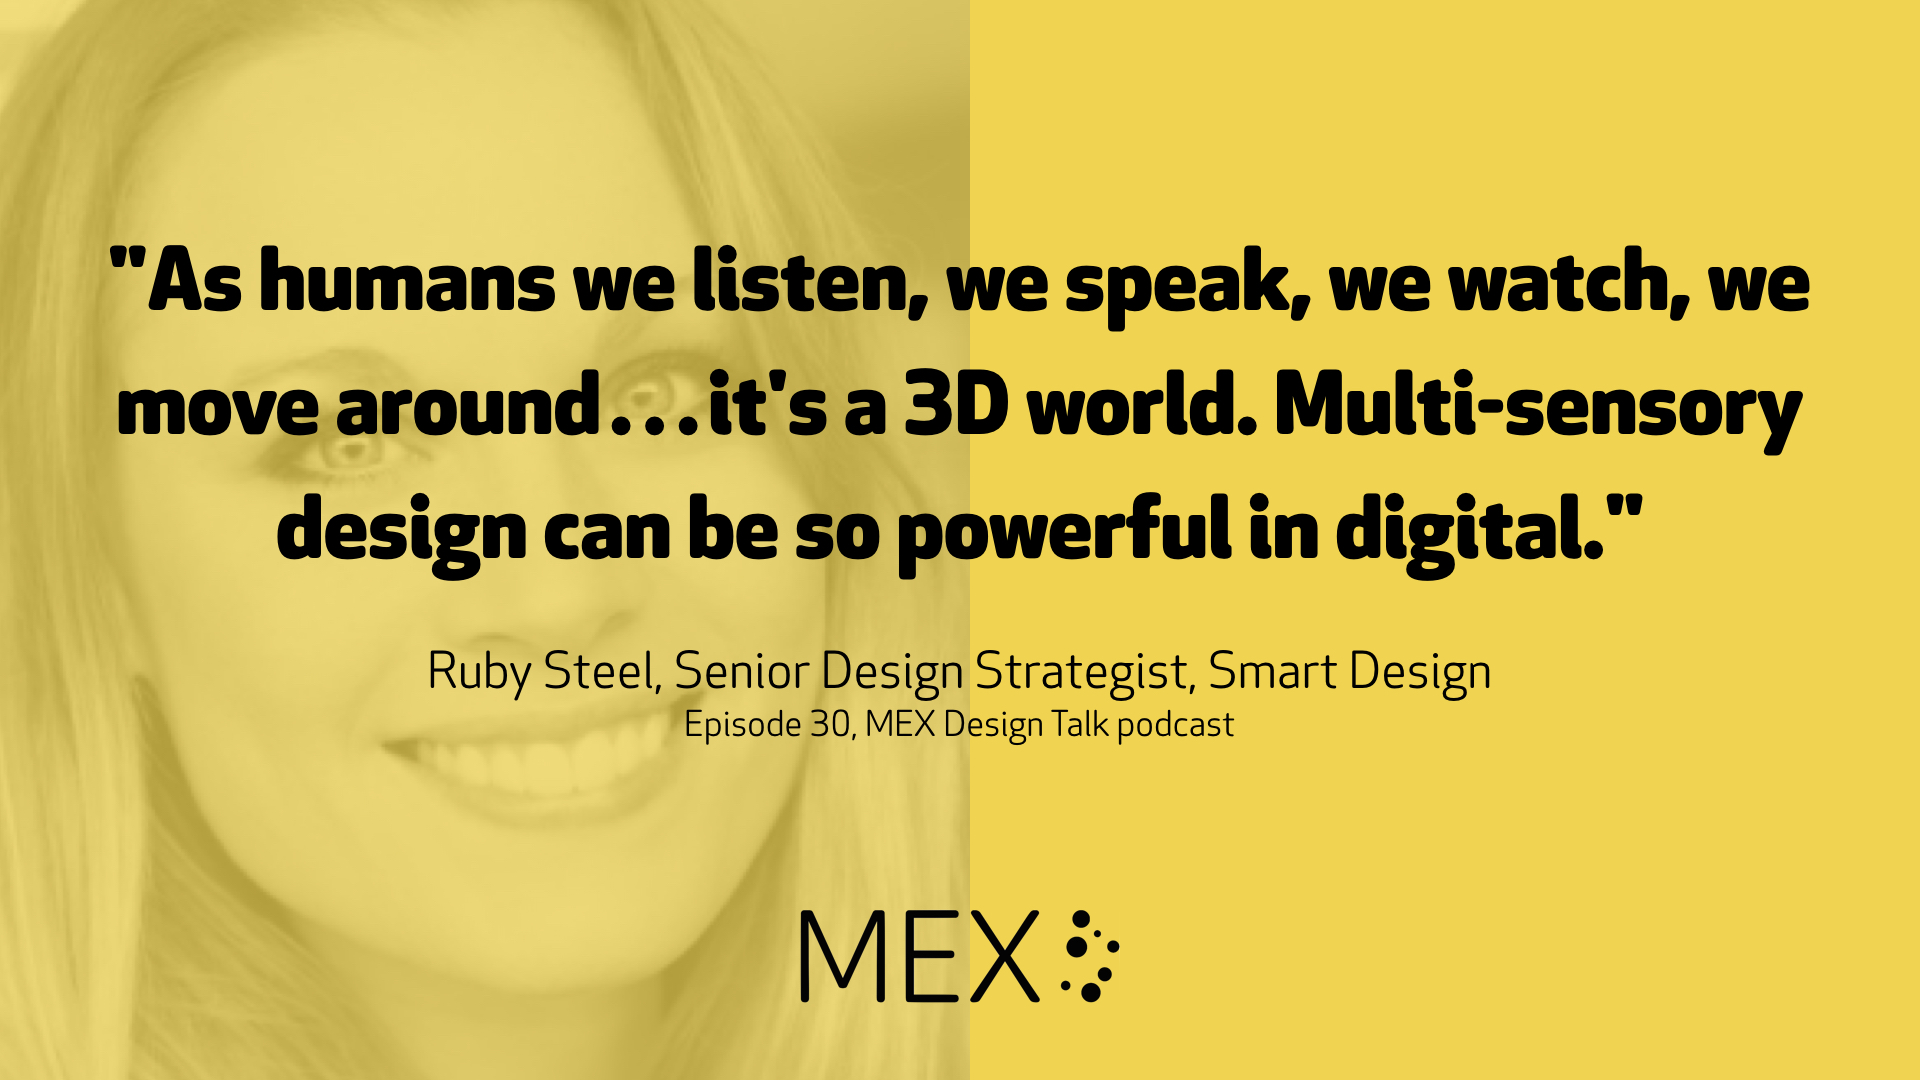 """As humans we listen, we speak, we watch, we move around…it's a 3D world. Multi-sensory design can be so powerful in digital."" Ruby Steel, Senior Design Strategist, Smart Design Episode 30, MEX Design Talk podcast"